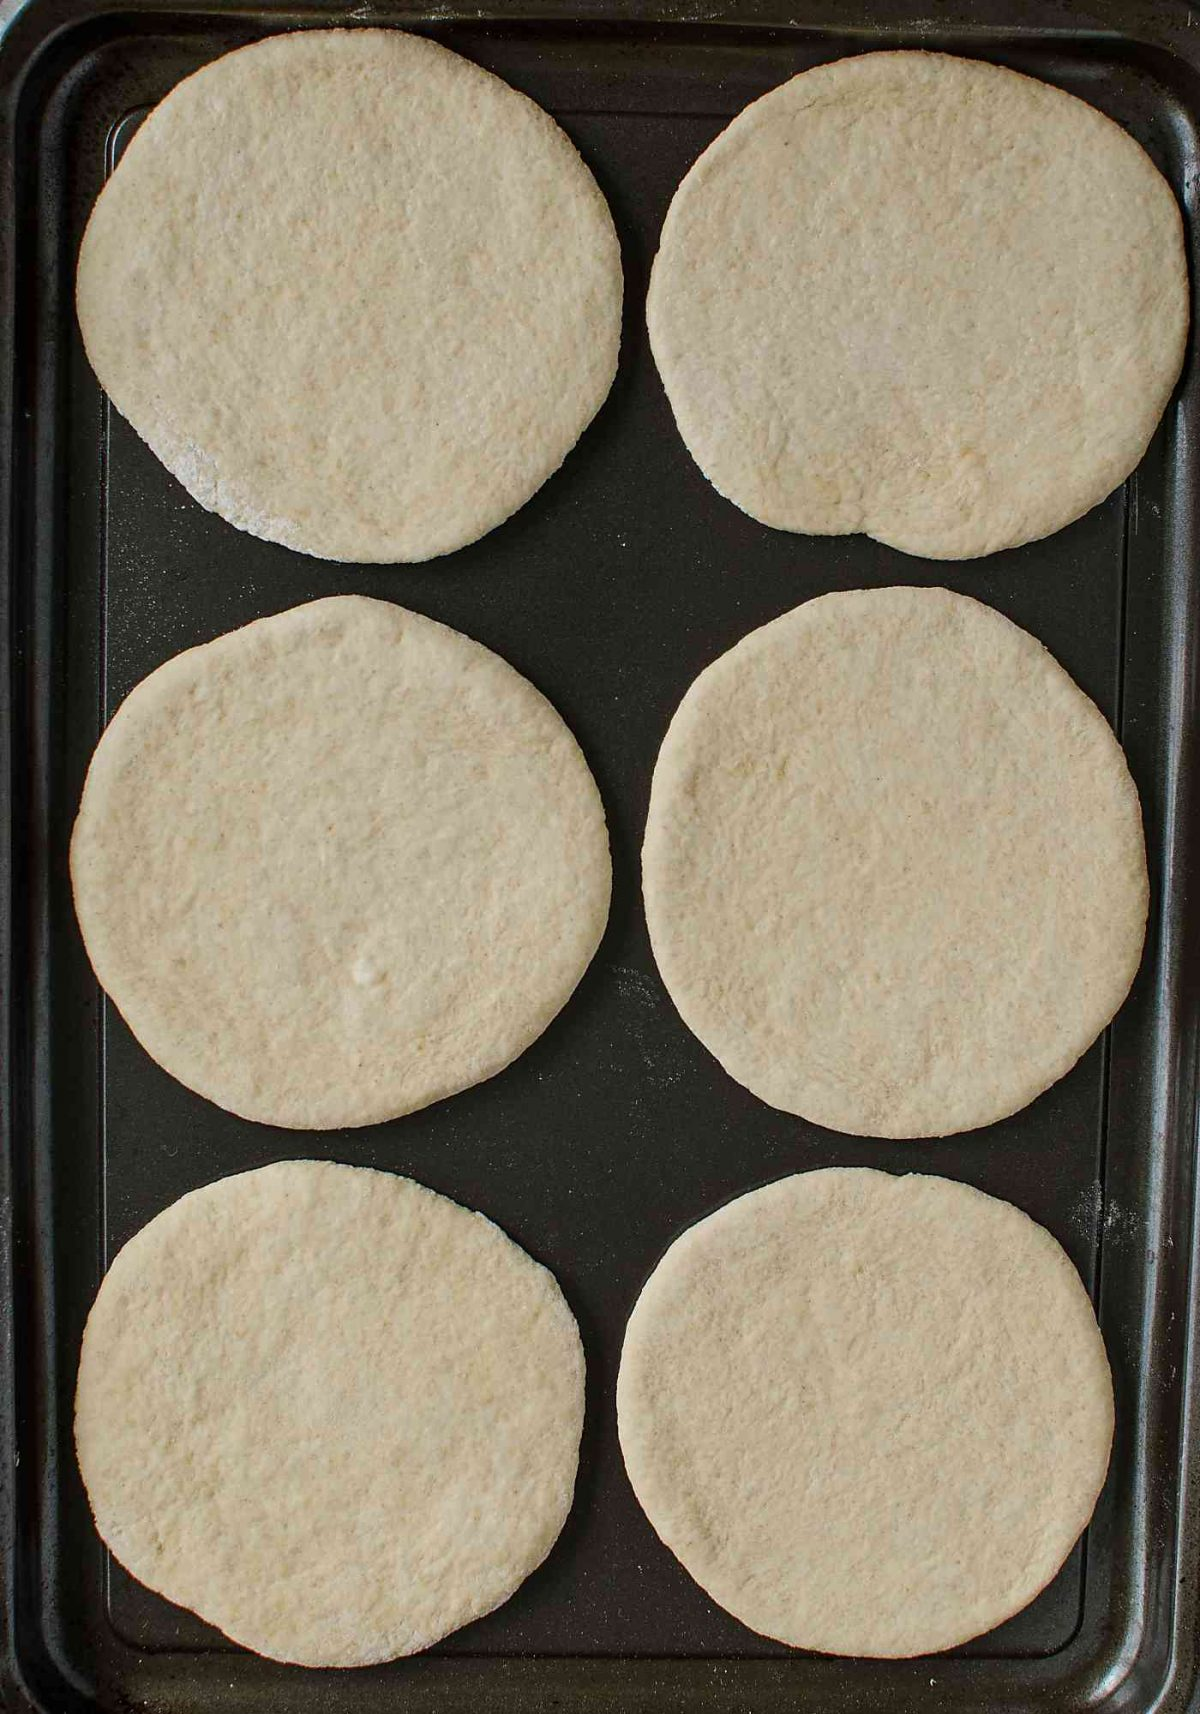 Whole wheat pita bread recipe - to make soft, fluffy, delicious and healthy pita bread at home whenever you want